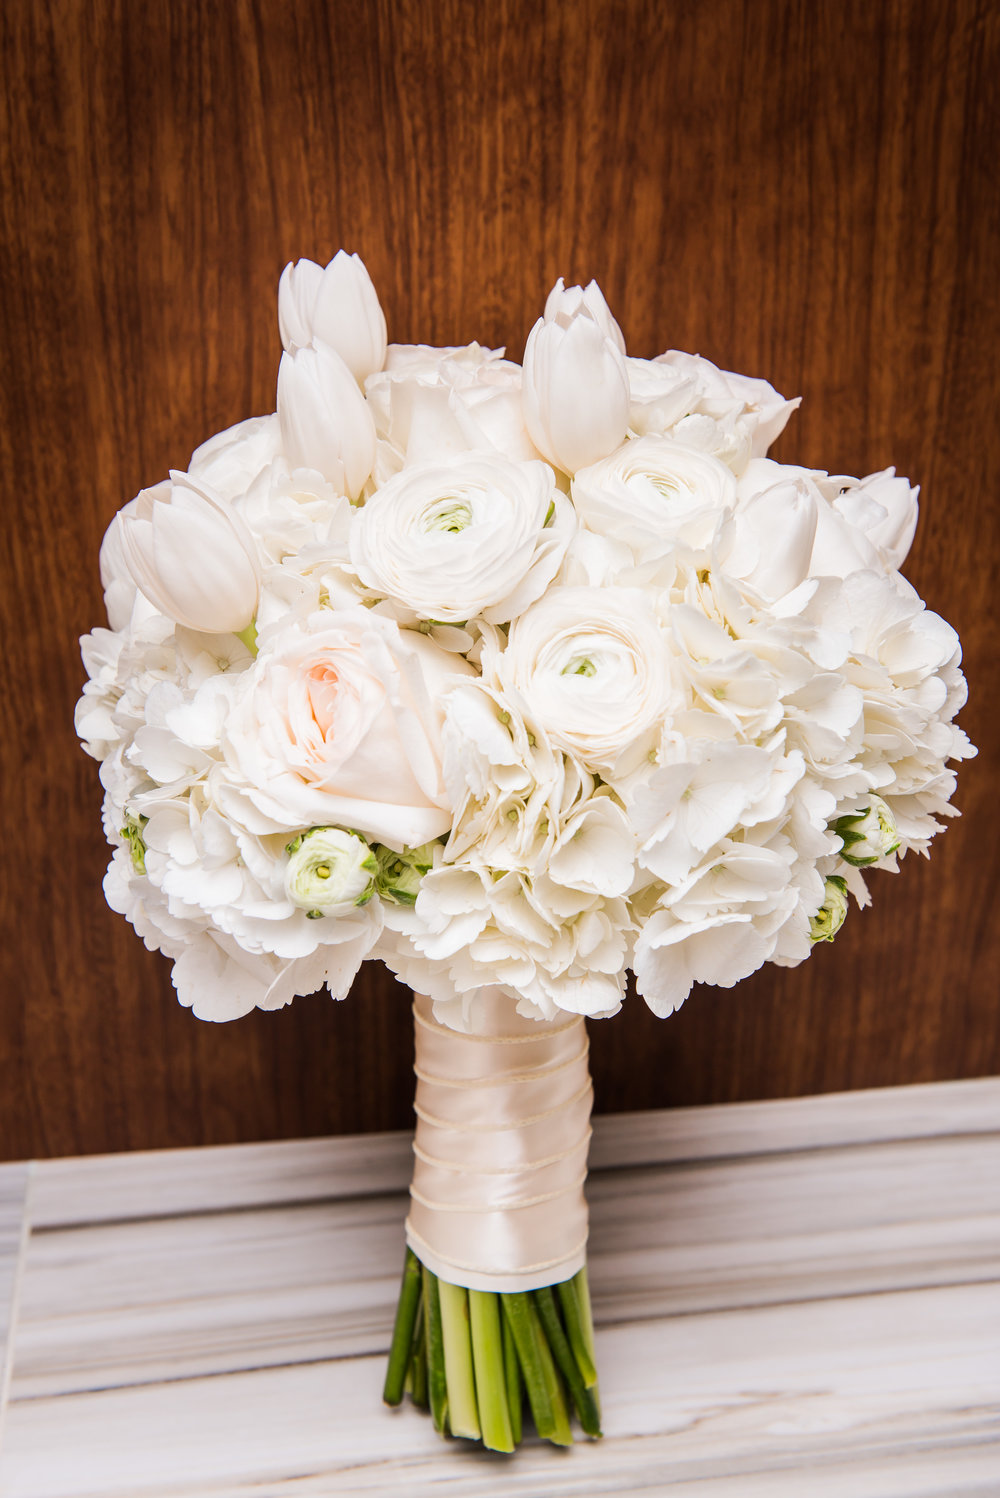 All White Bride's Bouquet | Houston Modern Weddings | Plan Our Day Events